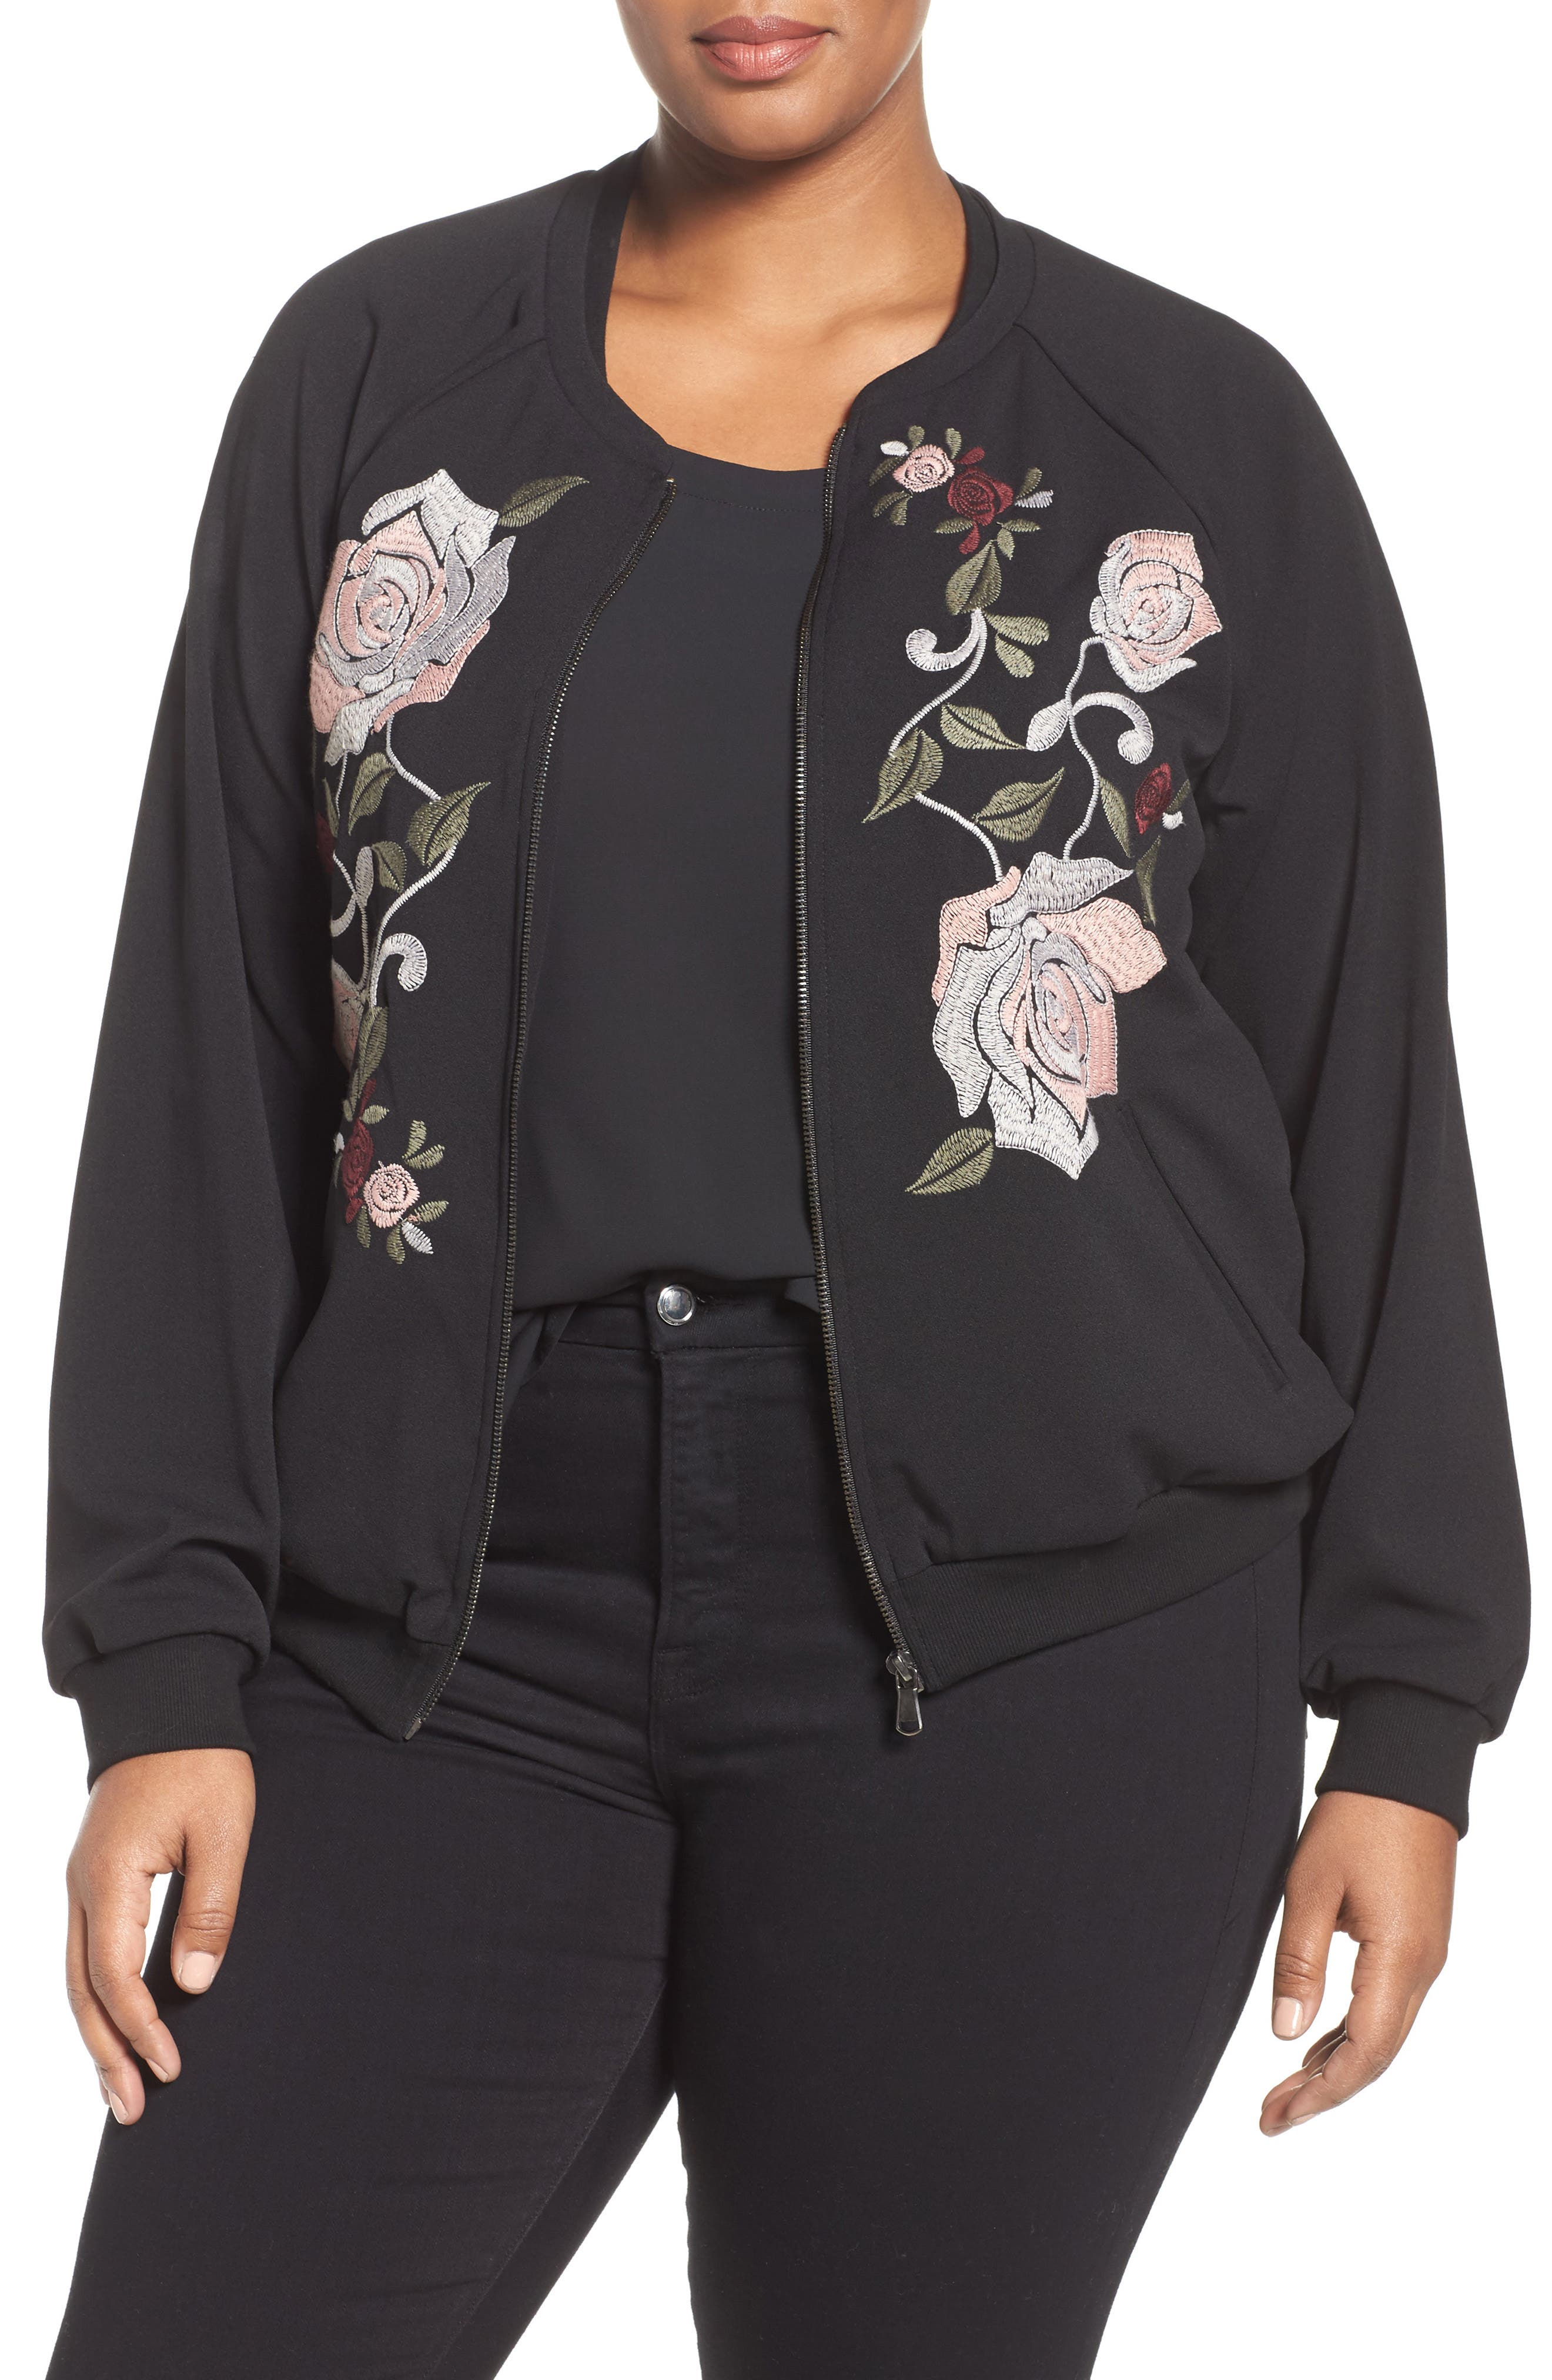 Alternate Image 1 Selected - Democracy Embroidered Bomber Jacket (Plus Size) (Nordstrom Exclusive)